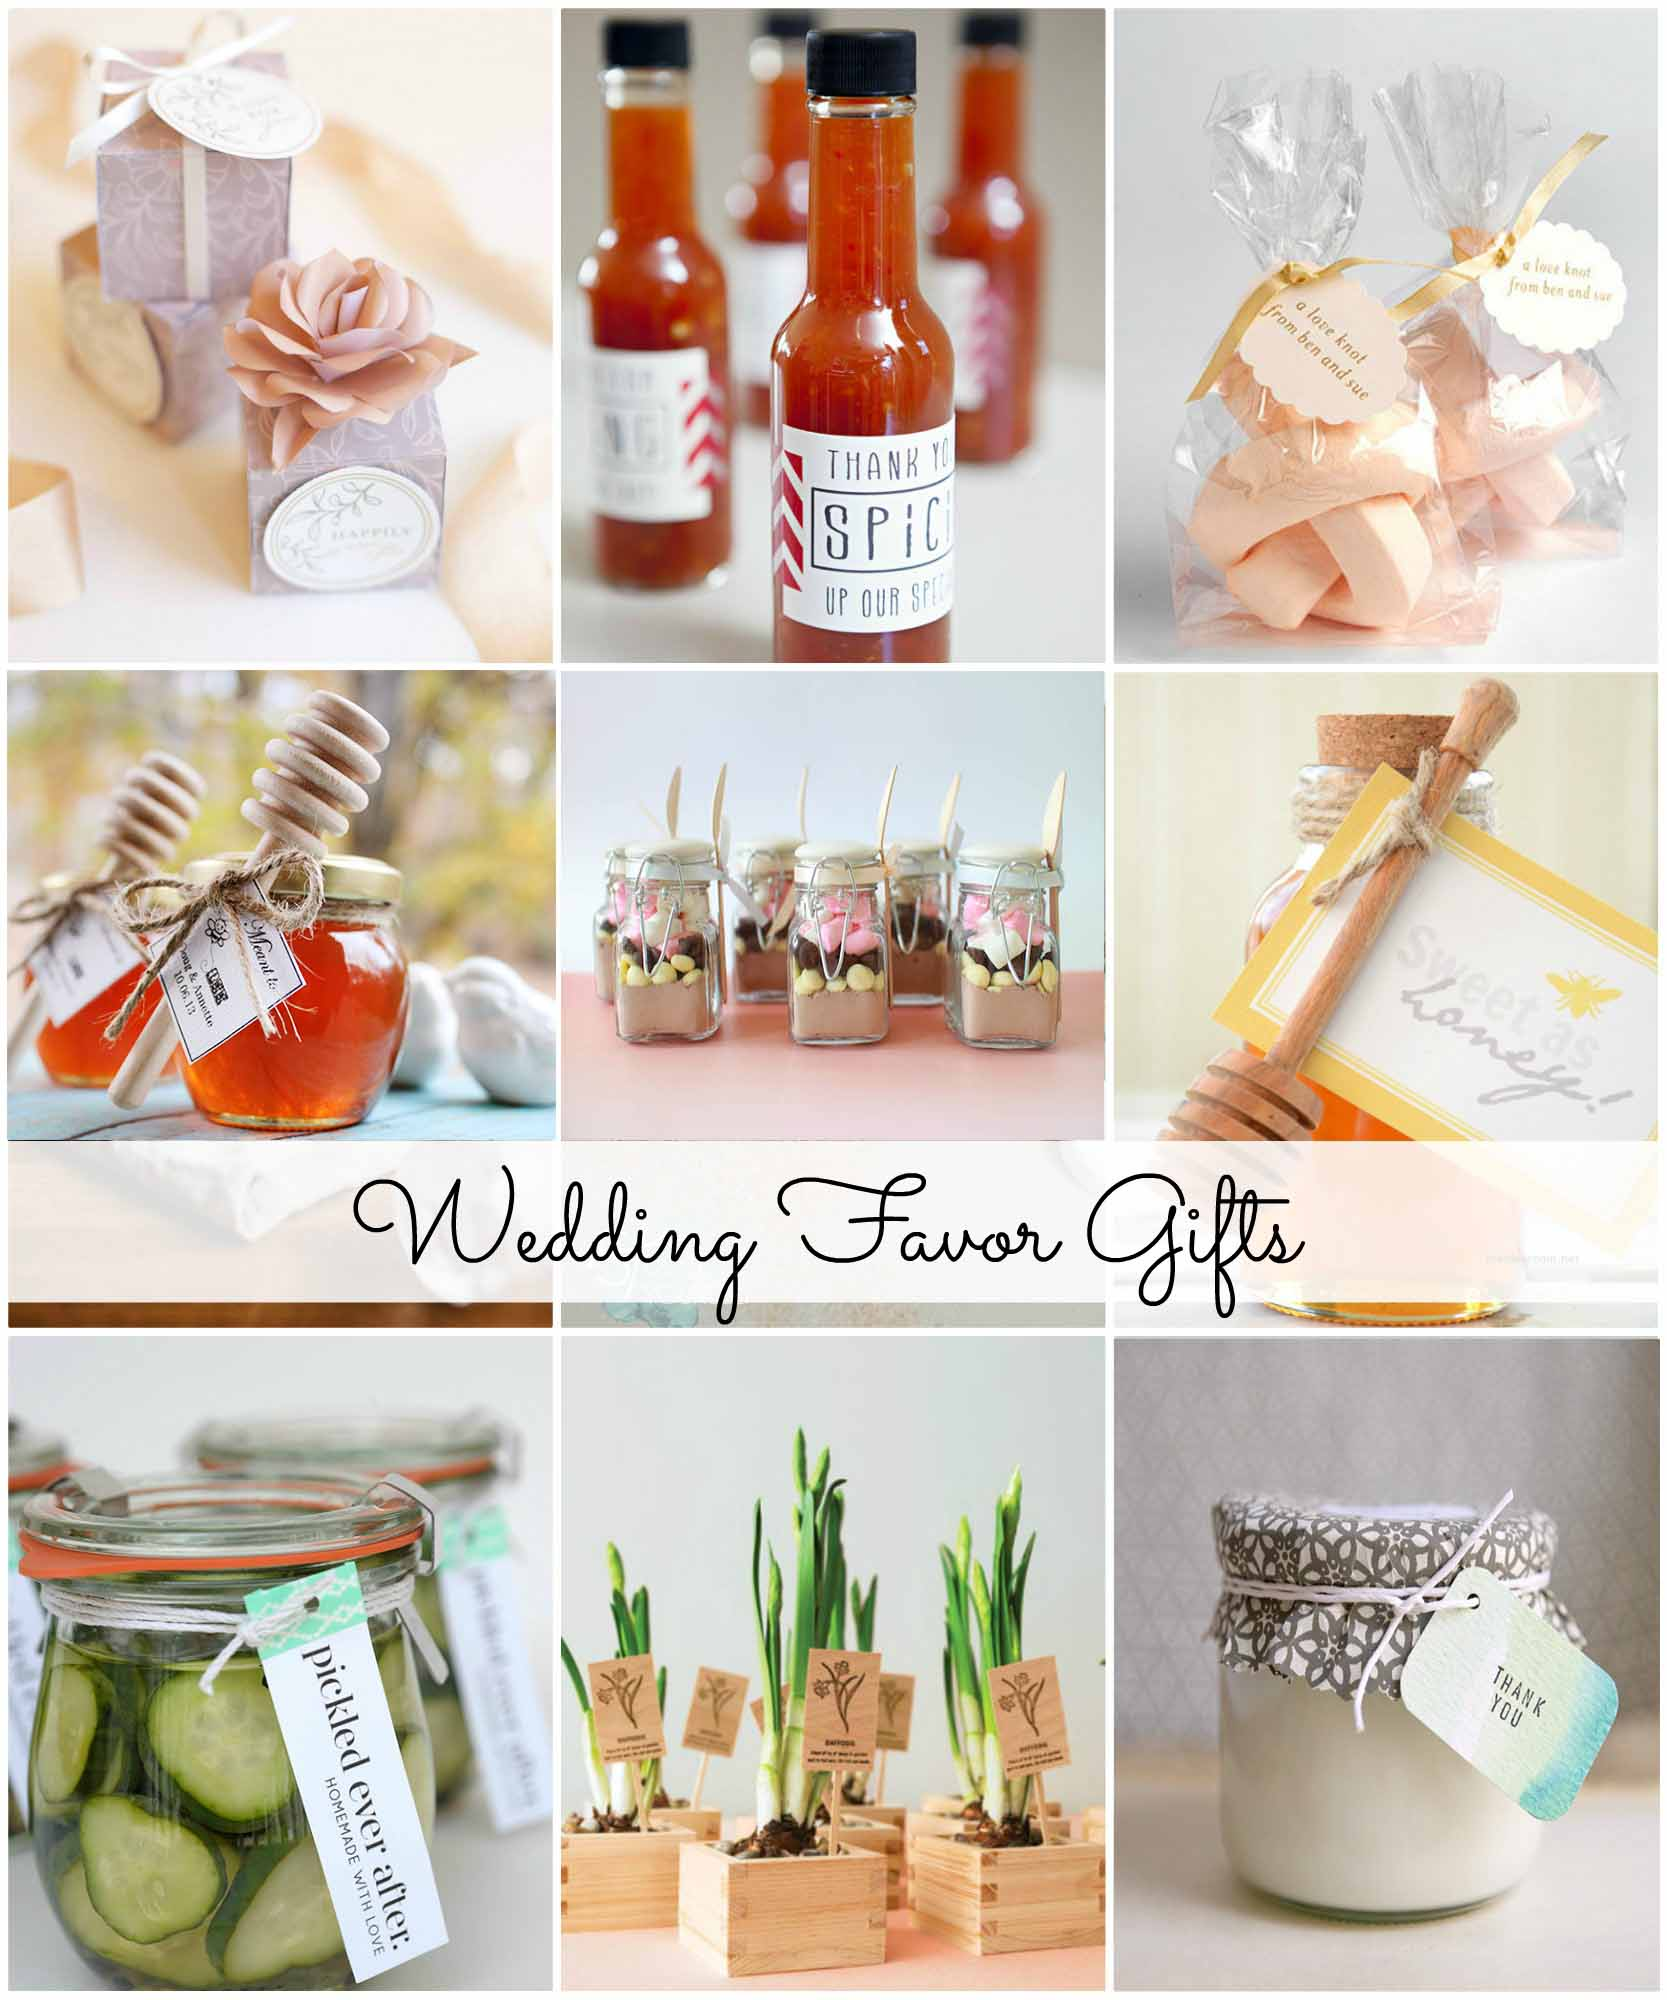 Wedding favors are small gifts for your guests